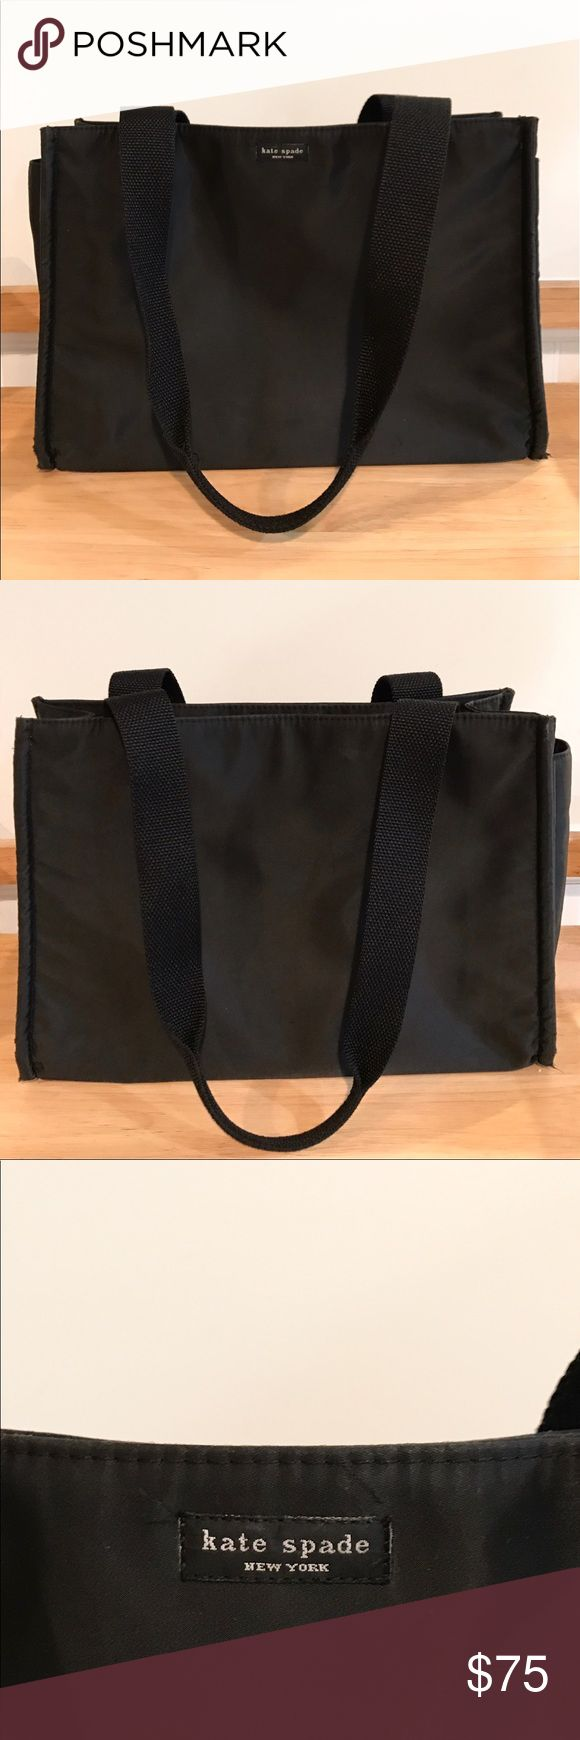 """Kate Spade Black Tote Bag Large Black Kate Spade Nylon Tote. 100% Authentic in Good Condition. Zippered close and additional zippered pocket inside. Can be used for travel, or as a diaper bag. Two side pockets for storage. Minor wear and tear (see corners). Approximately 5"""" wide, 14"""" long, 10"""" tall, with a """"10 strap drop. kate spade Bags Totes"""